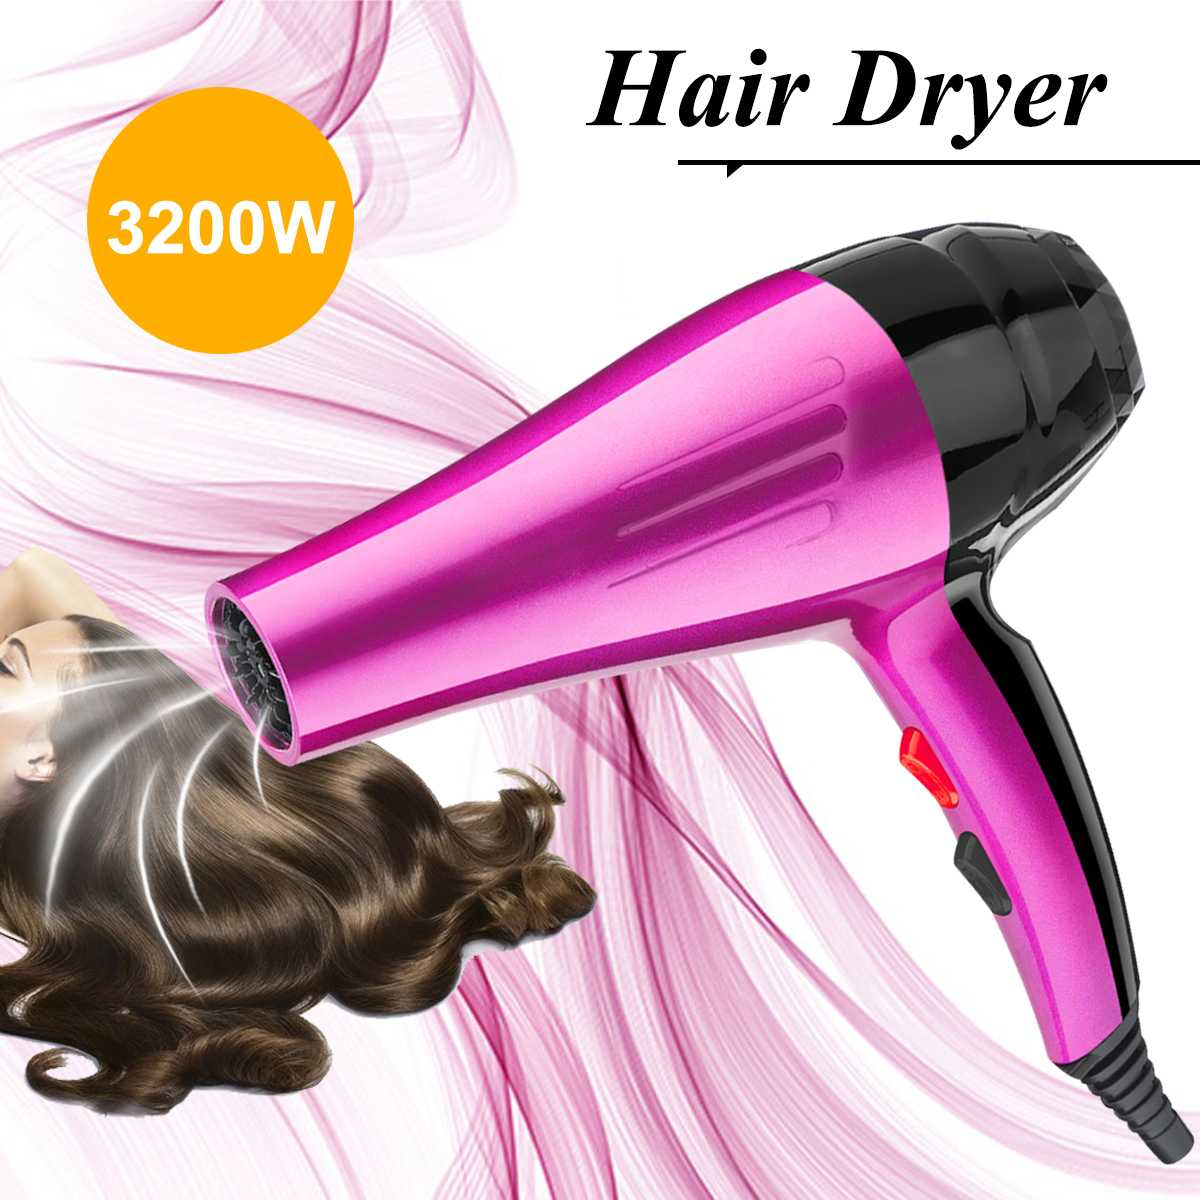 3200W Powerful Professional Salon Hair Dryer Negative Ion Blow Dryer Electric Hairdryer Hot/Cold Wind With Air Collecting Nozzle3200W Powerful Professional Salon Hair Dryer Negative Ion Blow Dryer Electric Hairdryer Hot/Cold Wind With Air Collecting Nozzle